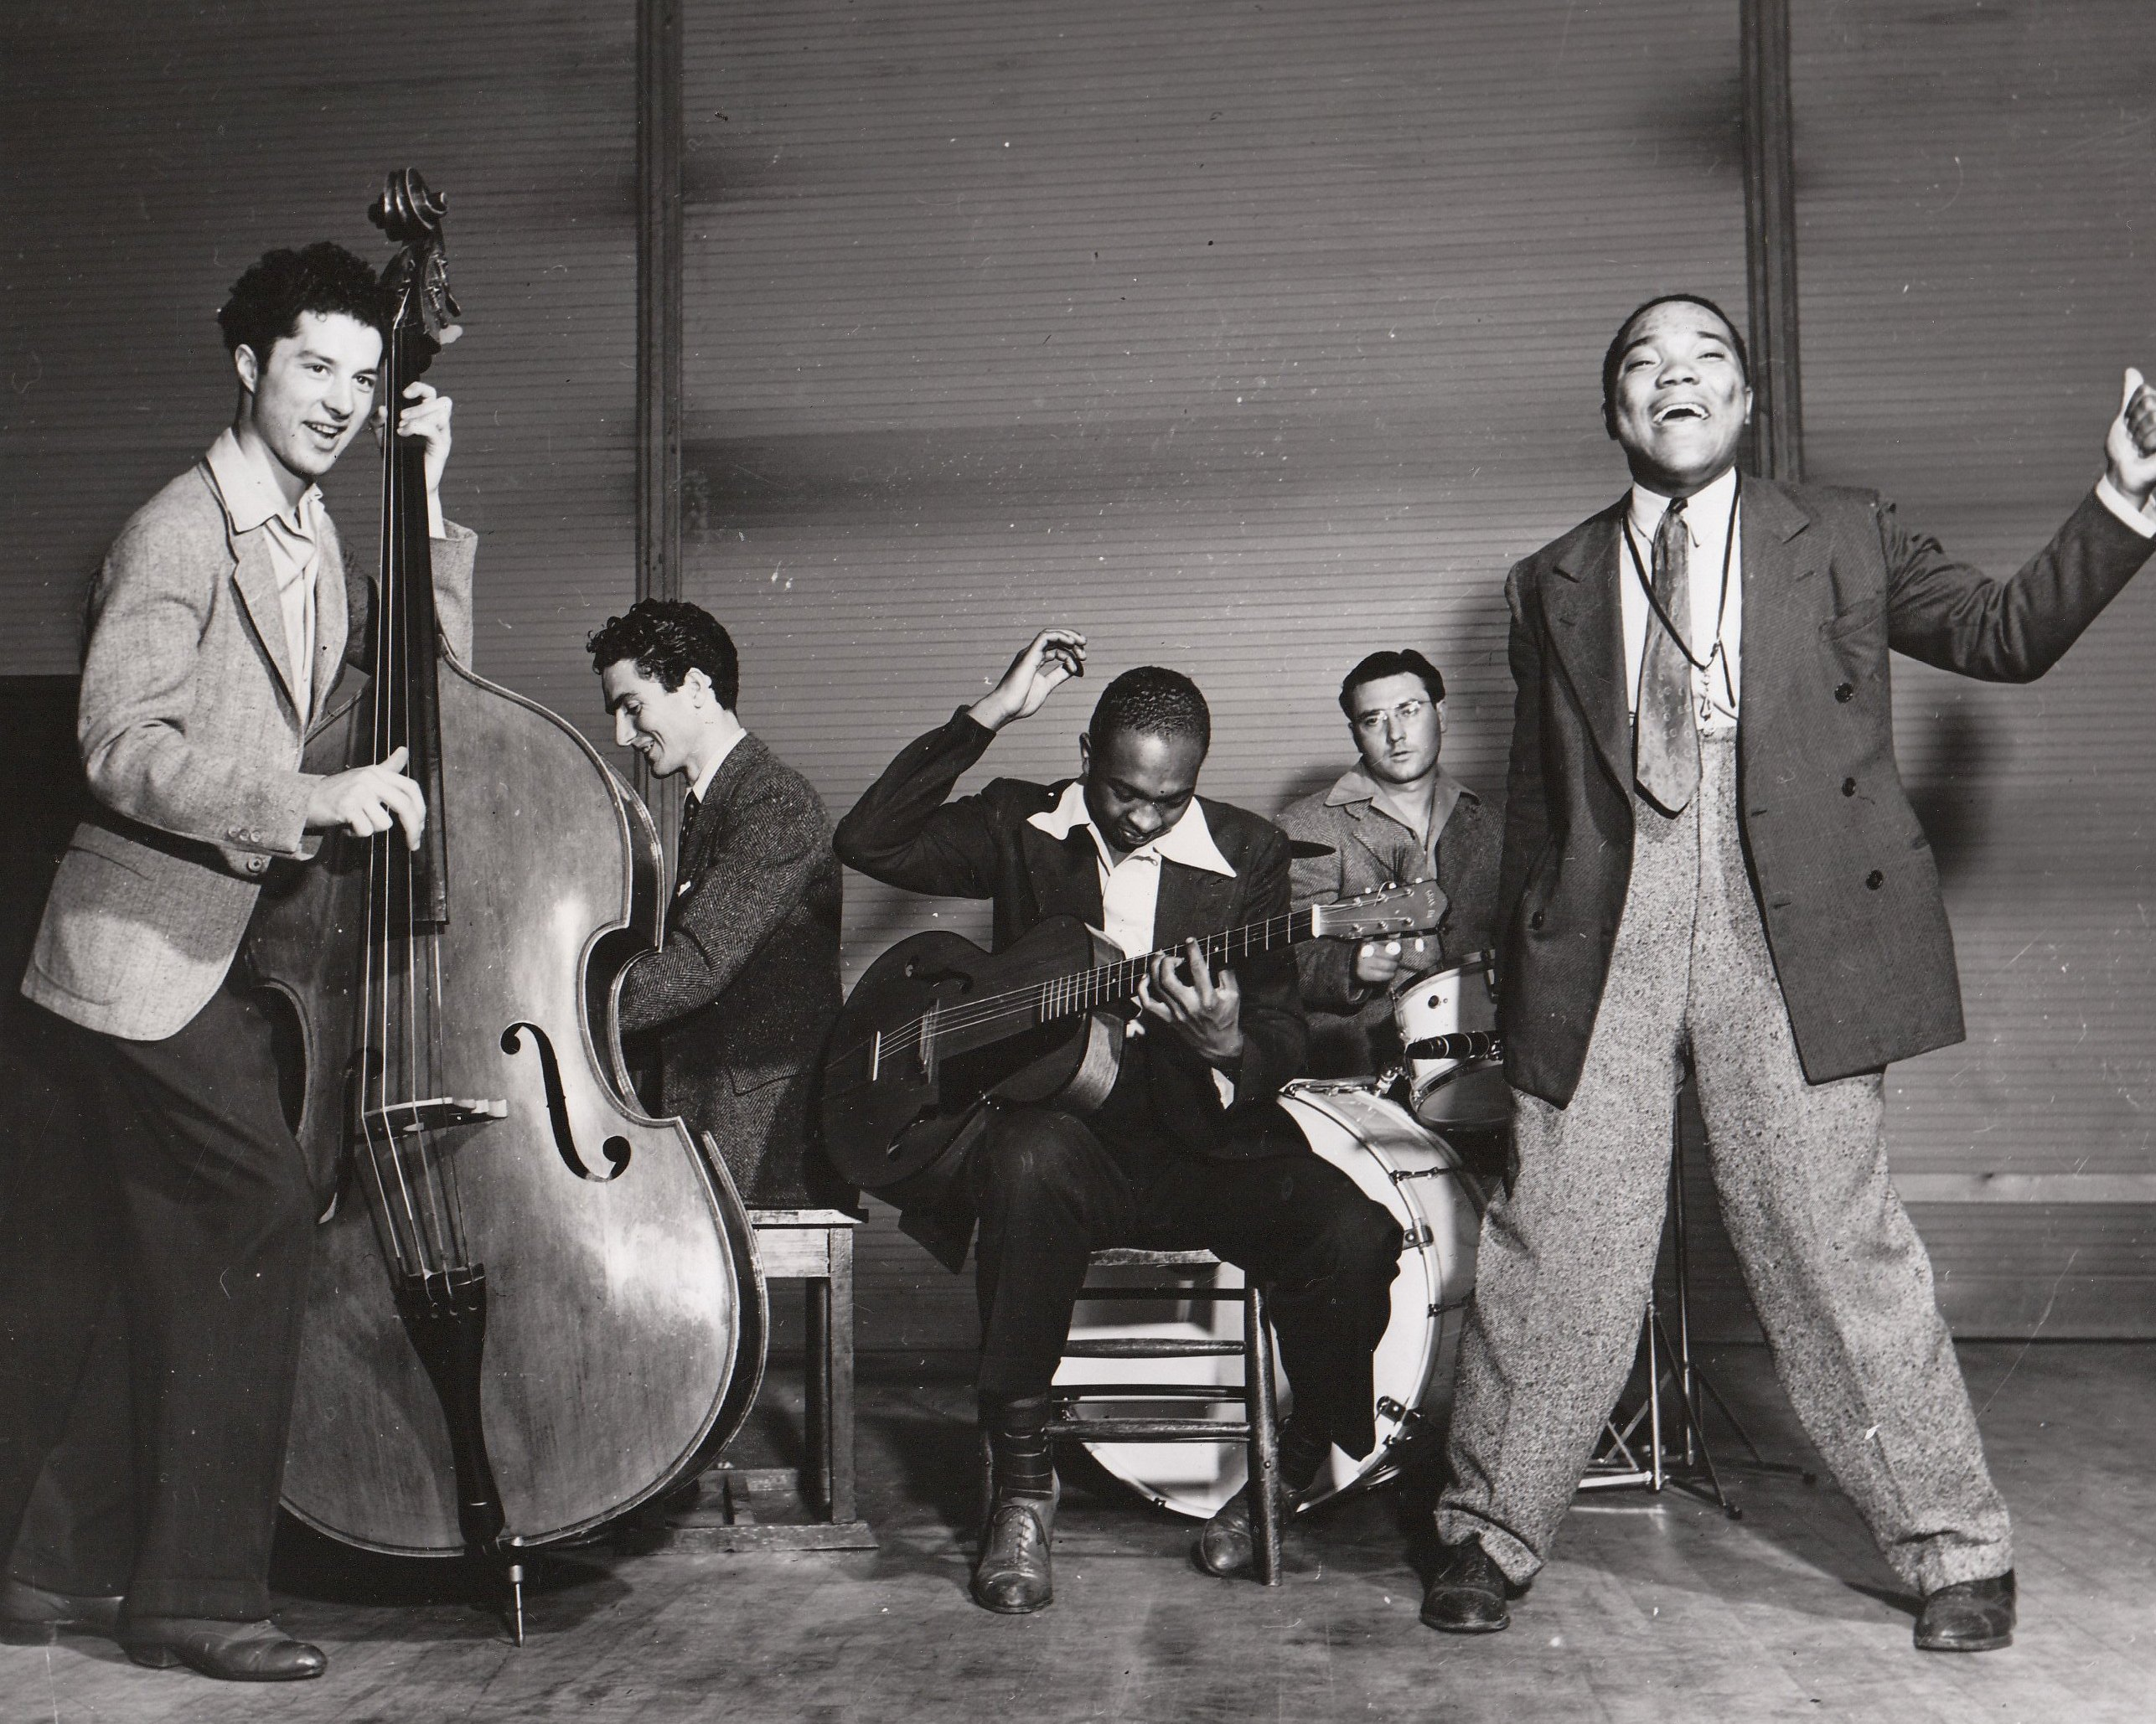 (left to right) Lee Cretarolo, Paul Dunlap, Hall Brant, Jimmy Pulara, and Terry Cruse are glad to make music in an NYA band for their fellow Los Angeles residents. Photo courtesy of the National Archives (ca. 1935-1943).